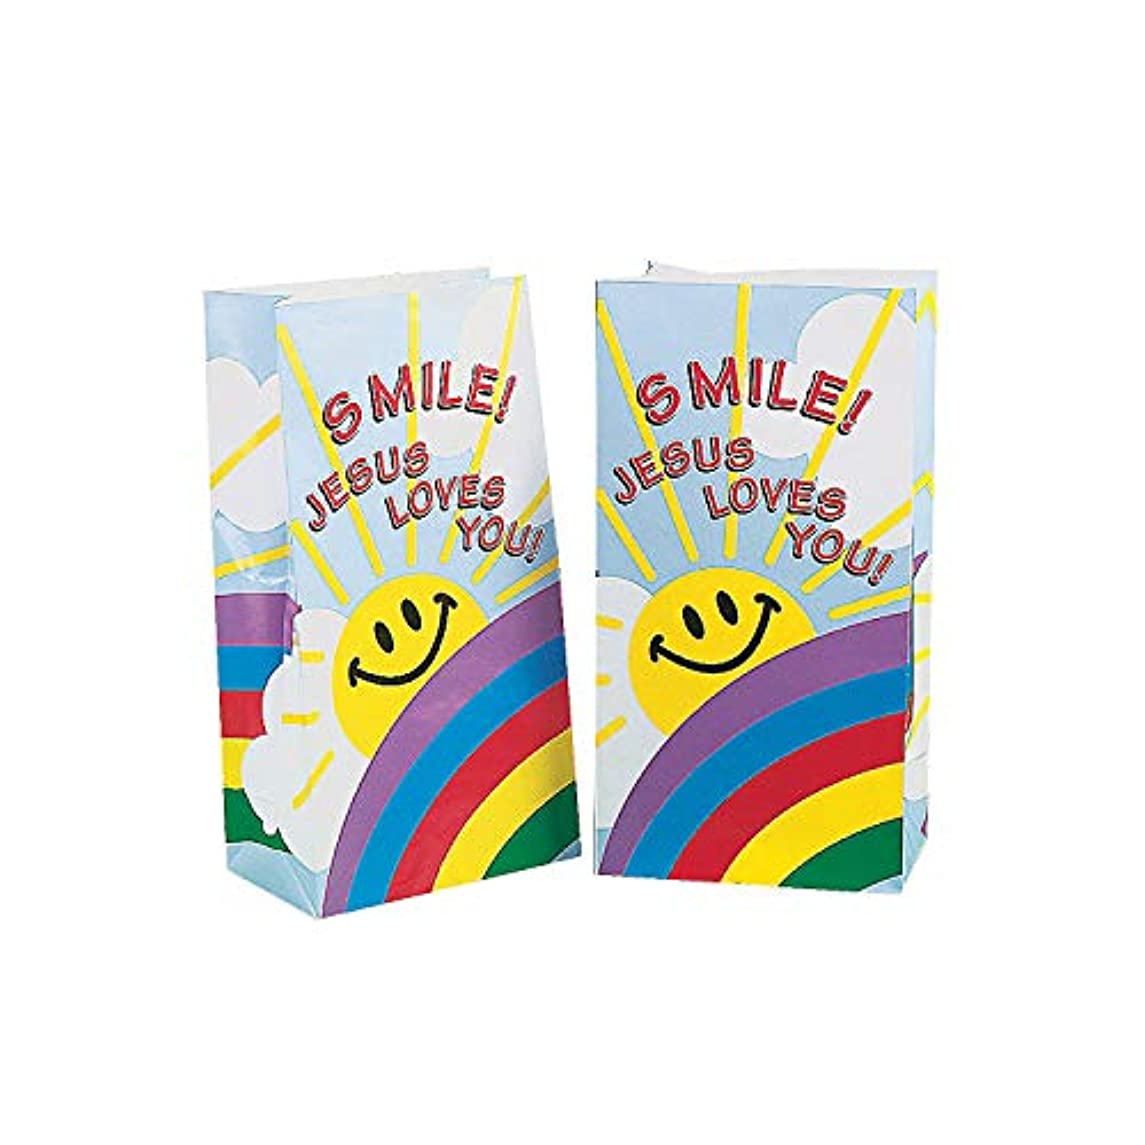 Fun Express - Smile! Jesus Loves You Paper Bags for Party - Party Supplies - Bags - Paper Treat Bags - Party - 12 Pieces